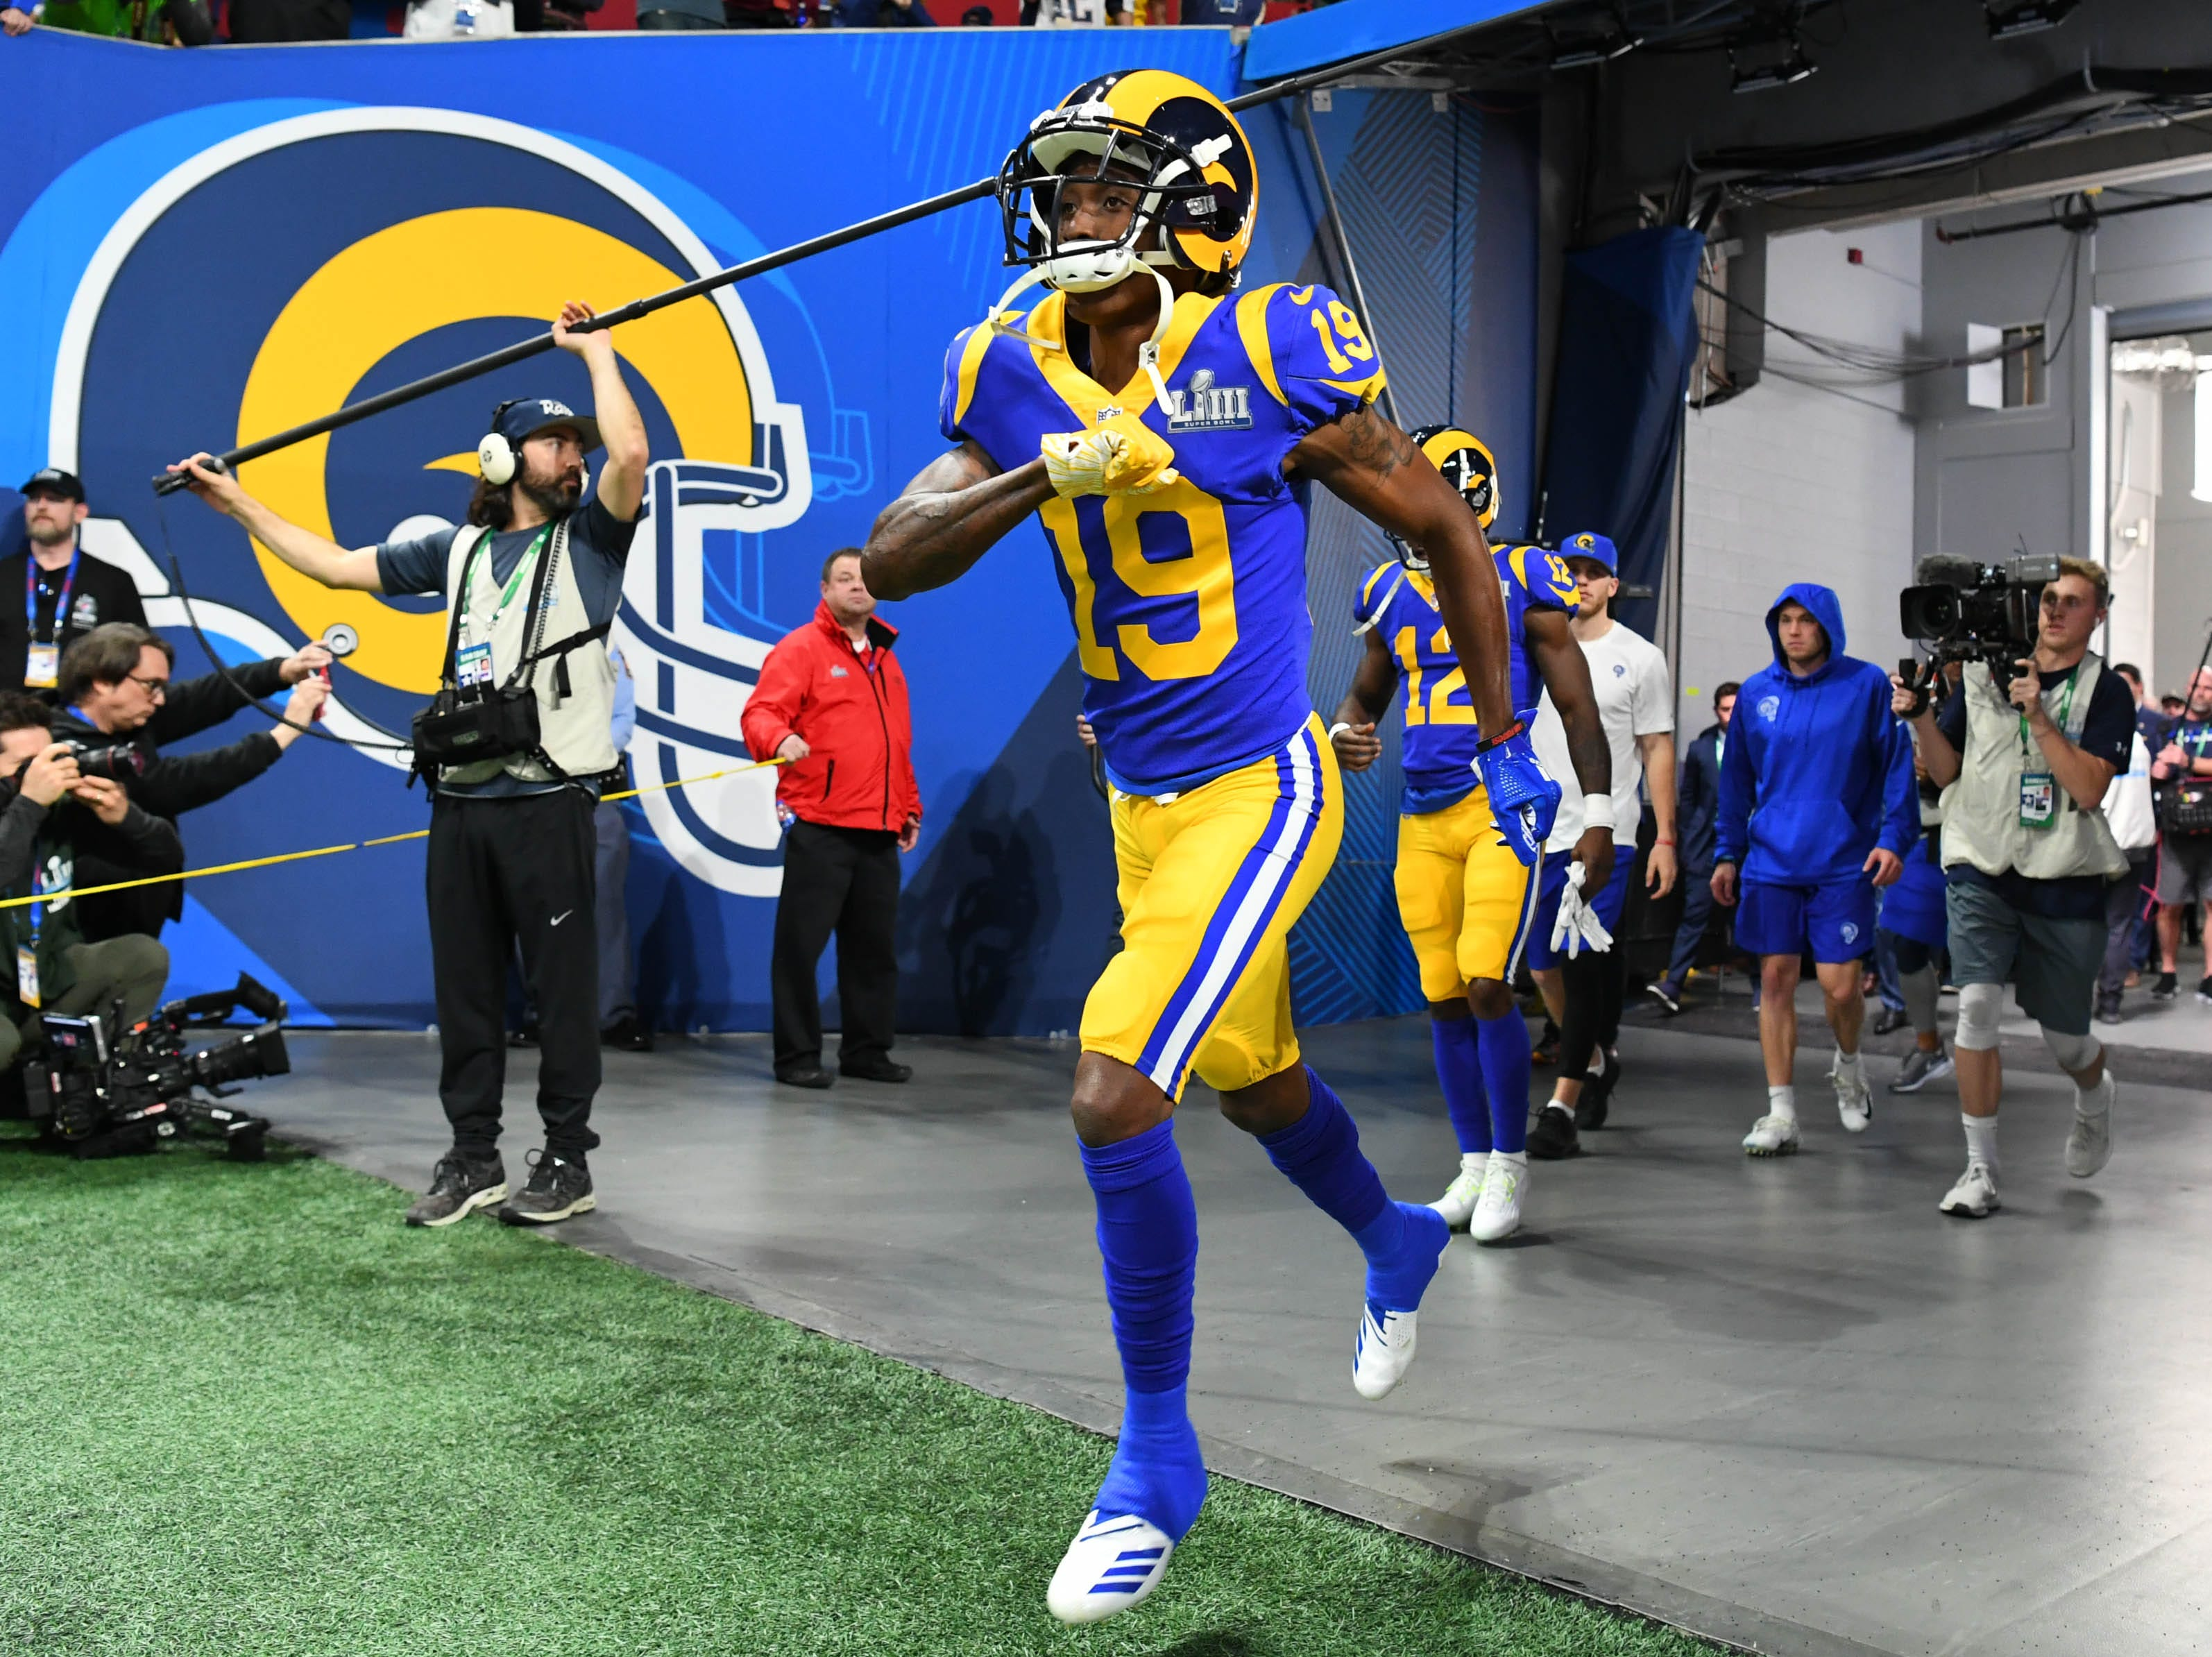 Los Angeles Rams wide receivers JoJo Natson (19) and Brandin Cooks (12) run  onto the field for warm-ups before Super Bowl LIII at Mercedes-Benz Stadium.